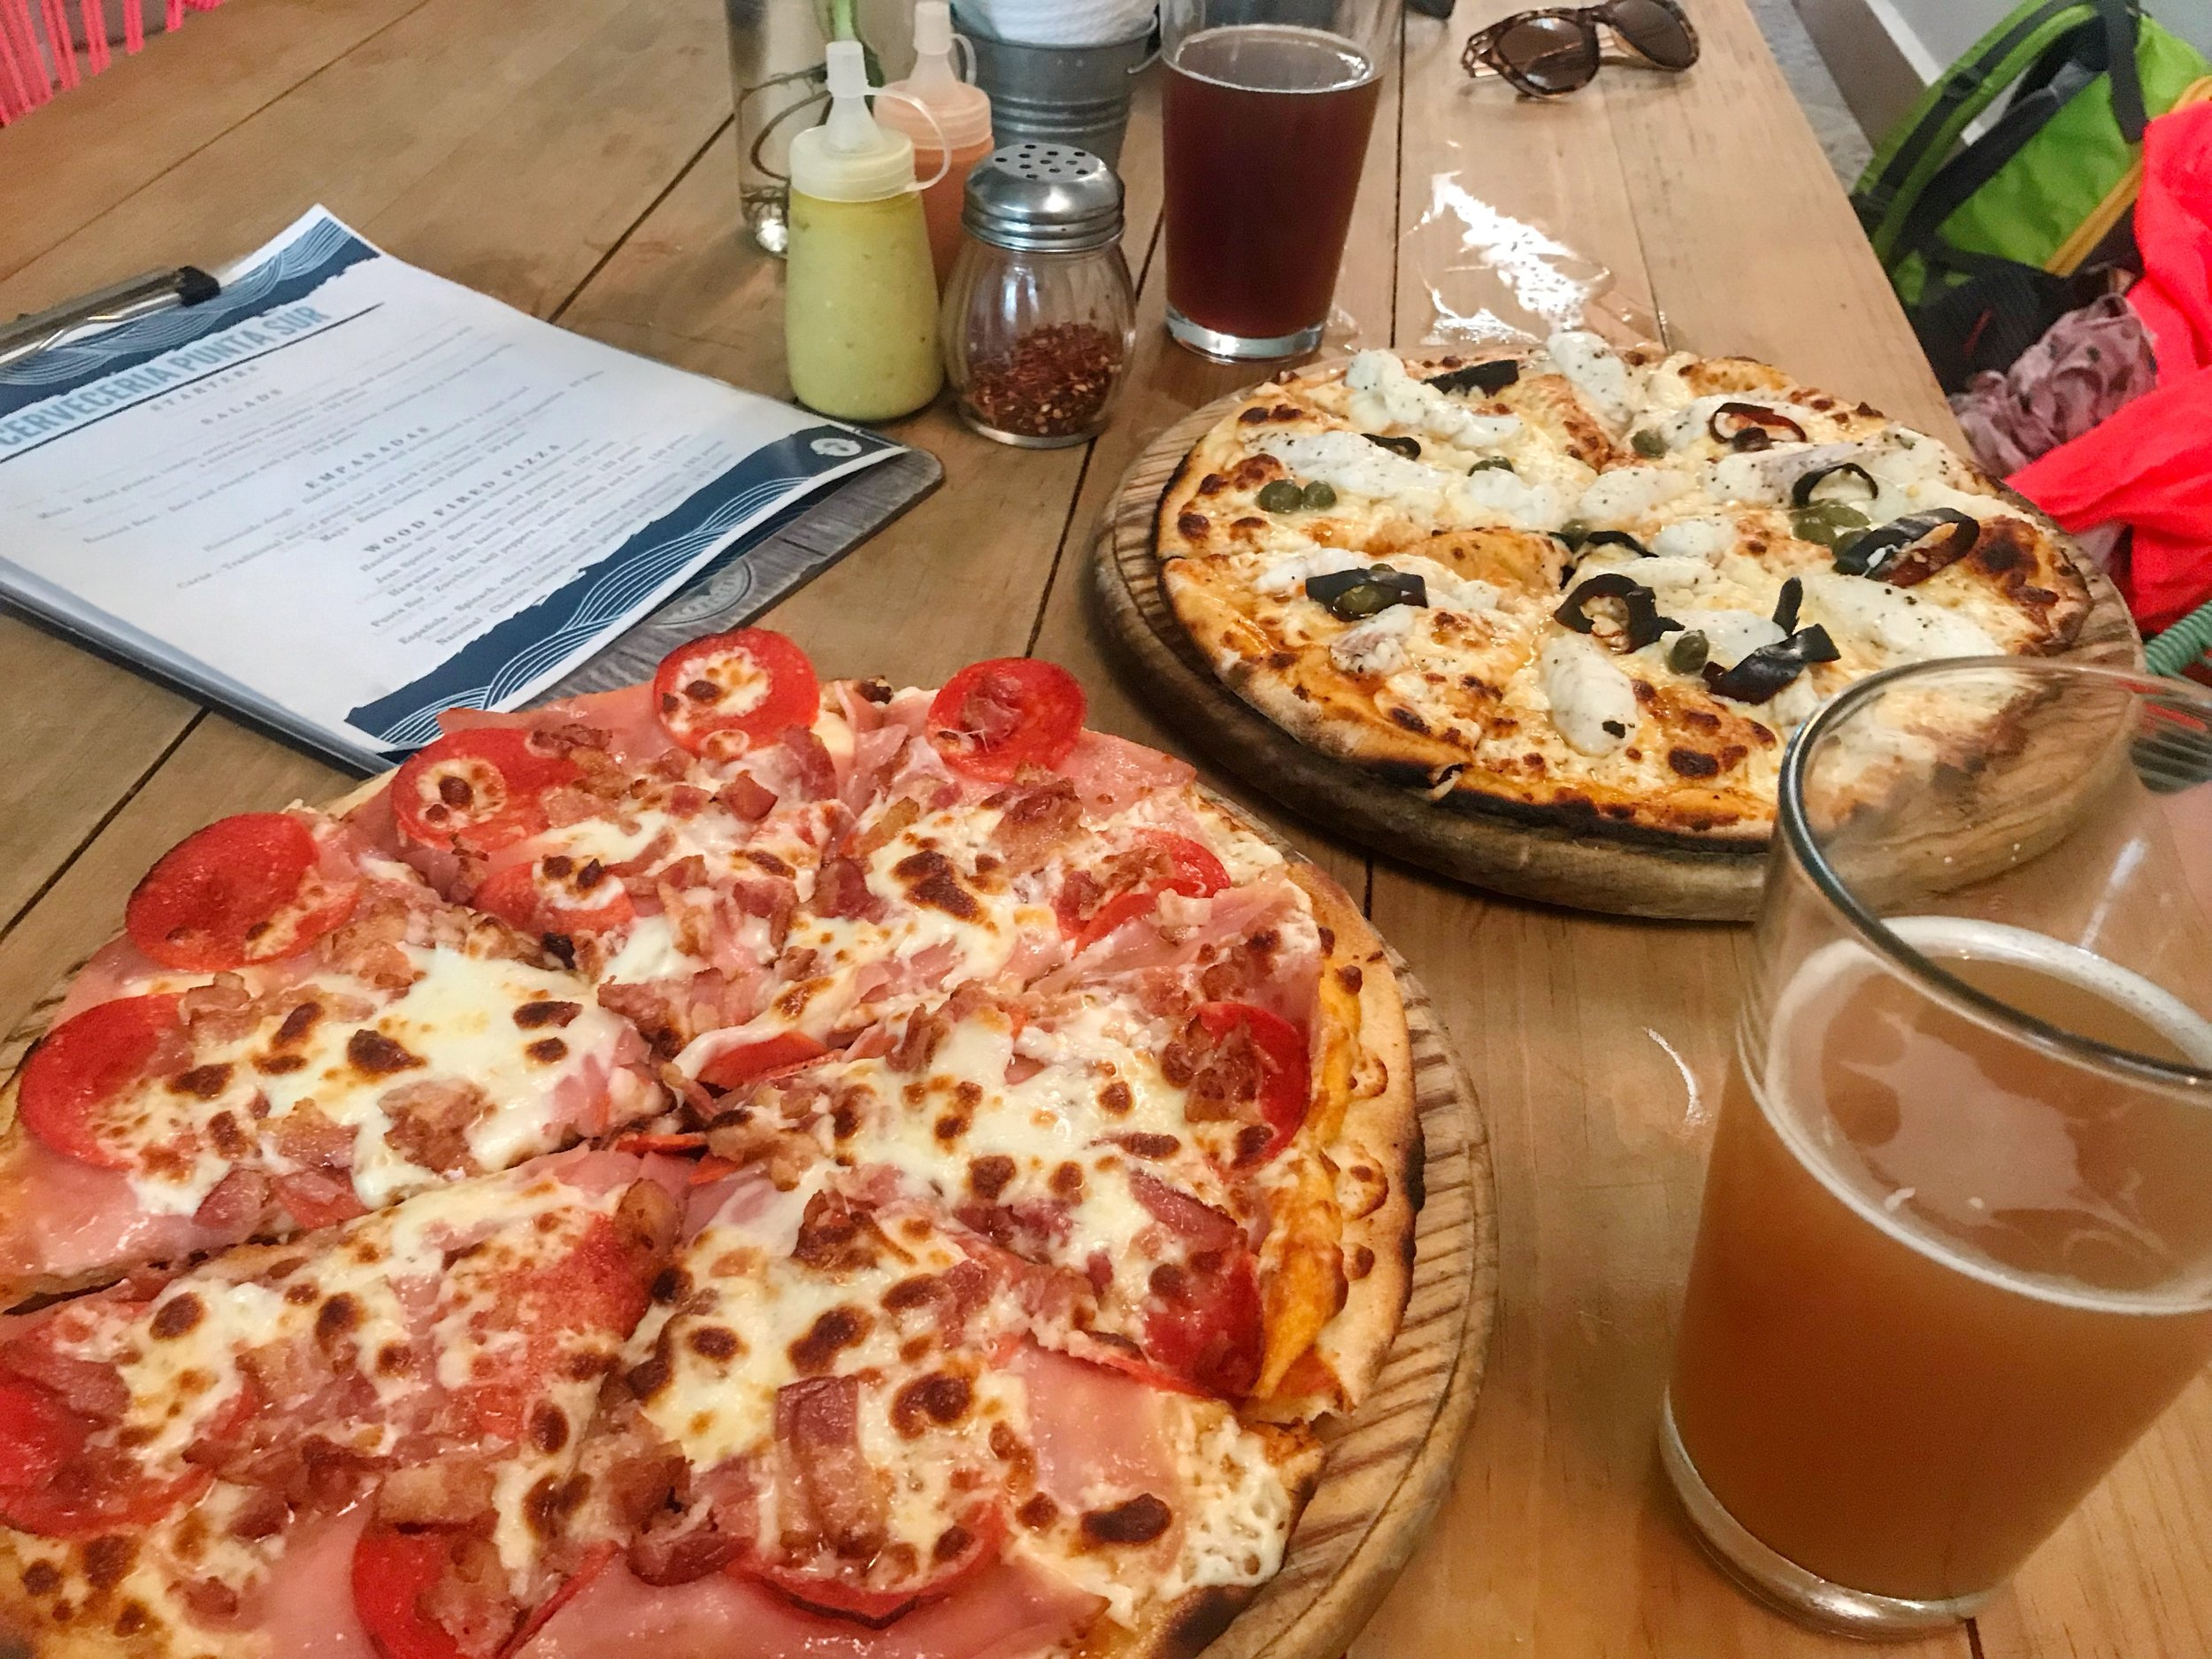 things to do in Cozumel - micro brewery cozumel pizza